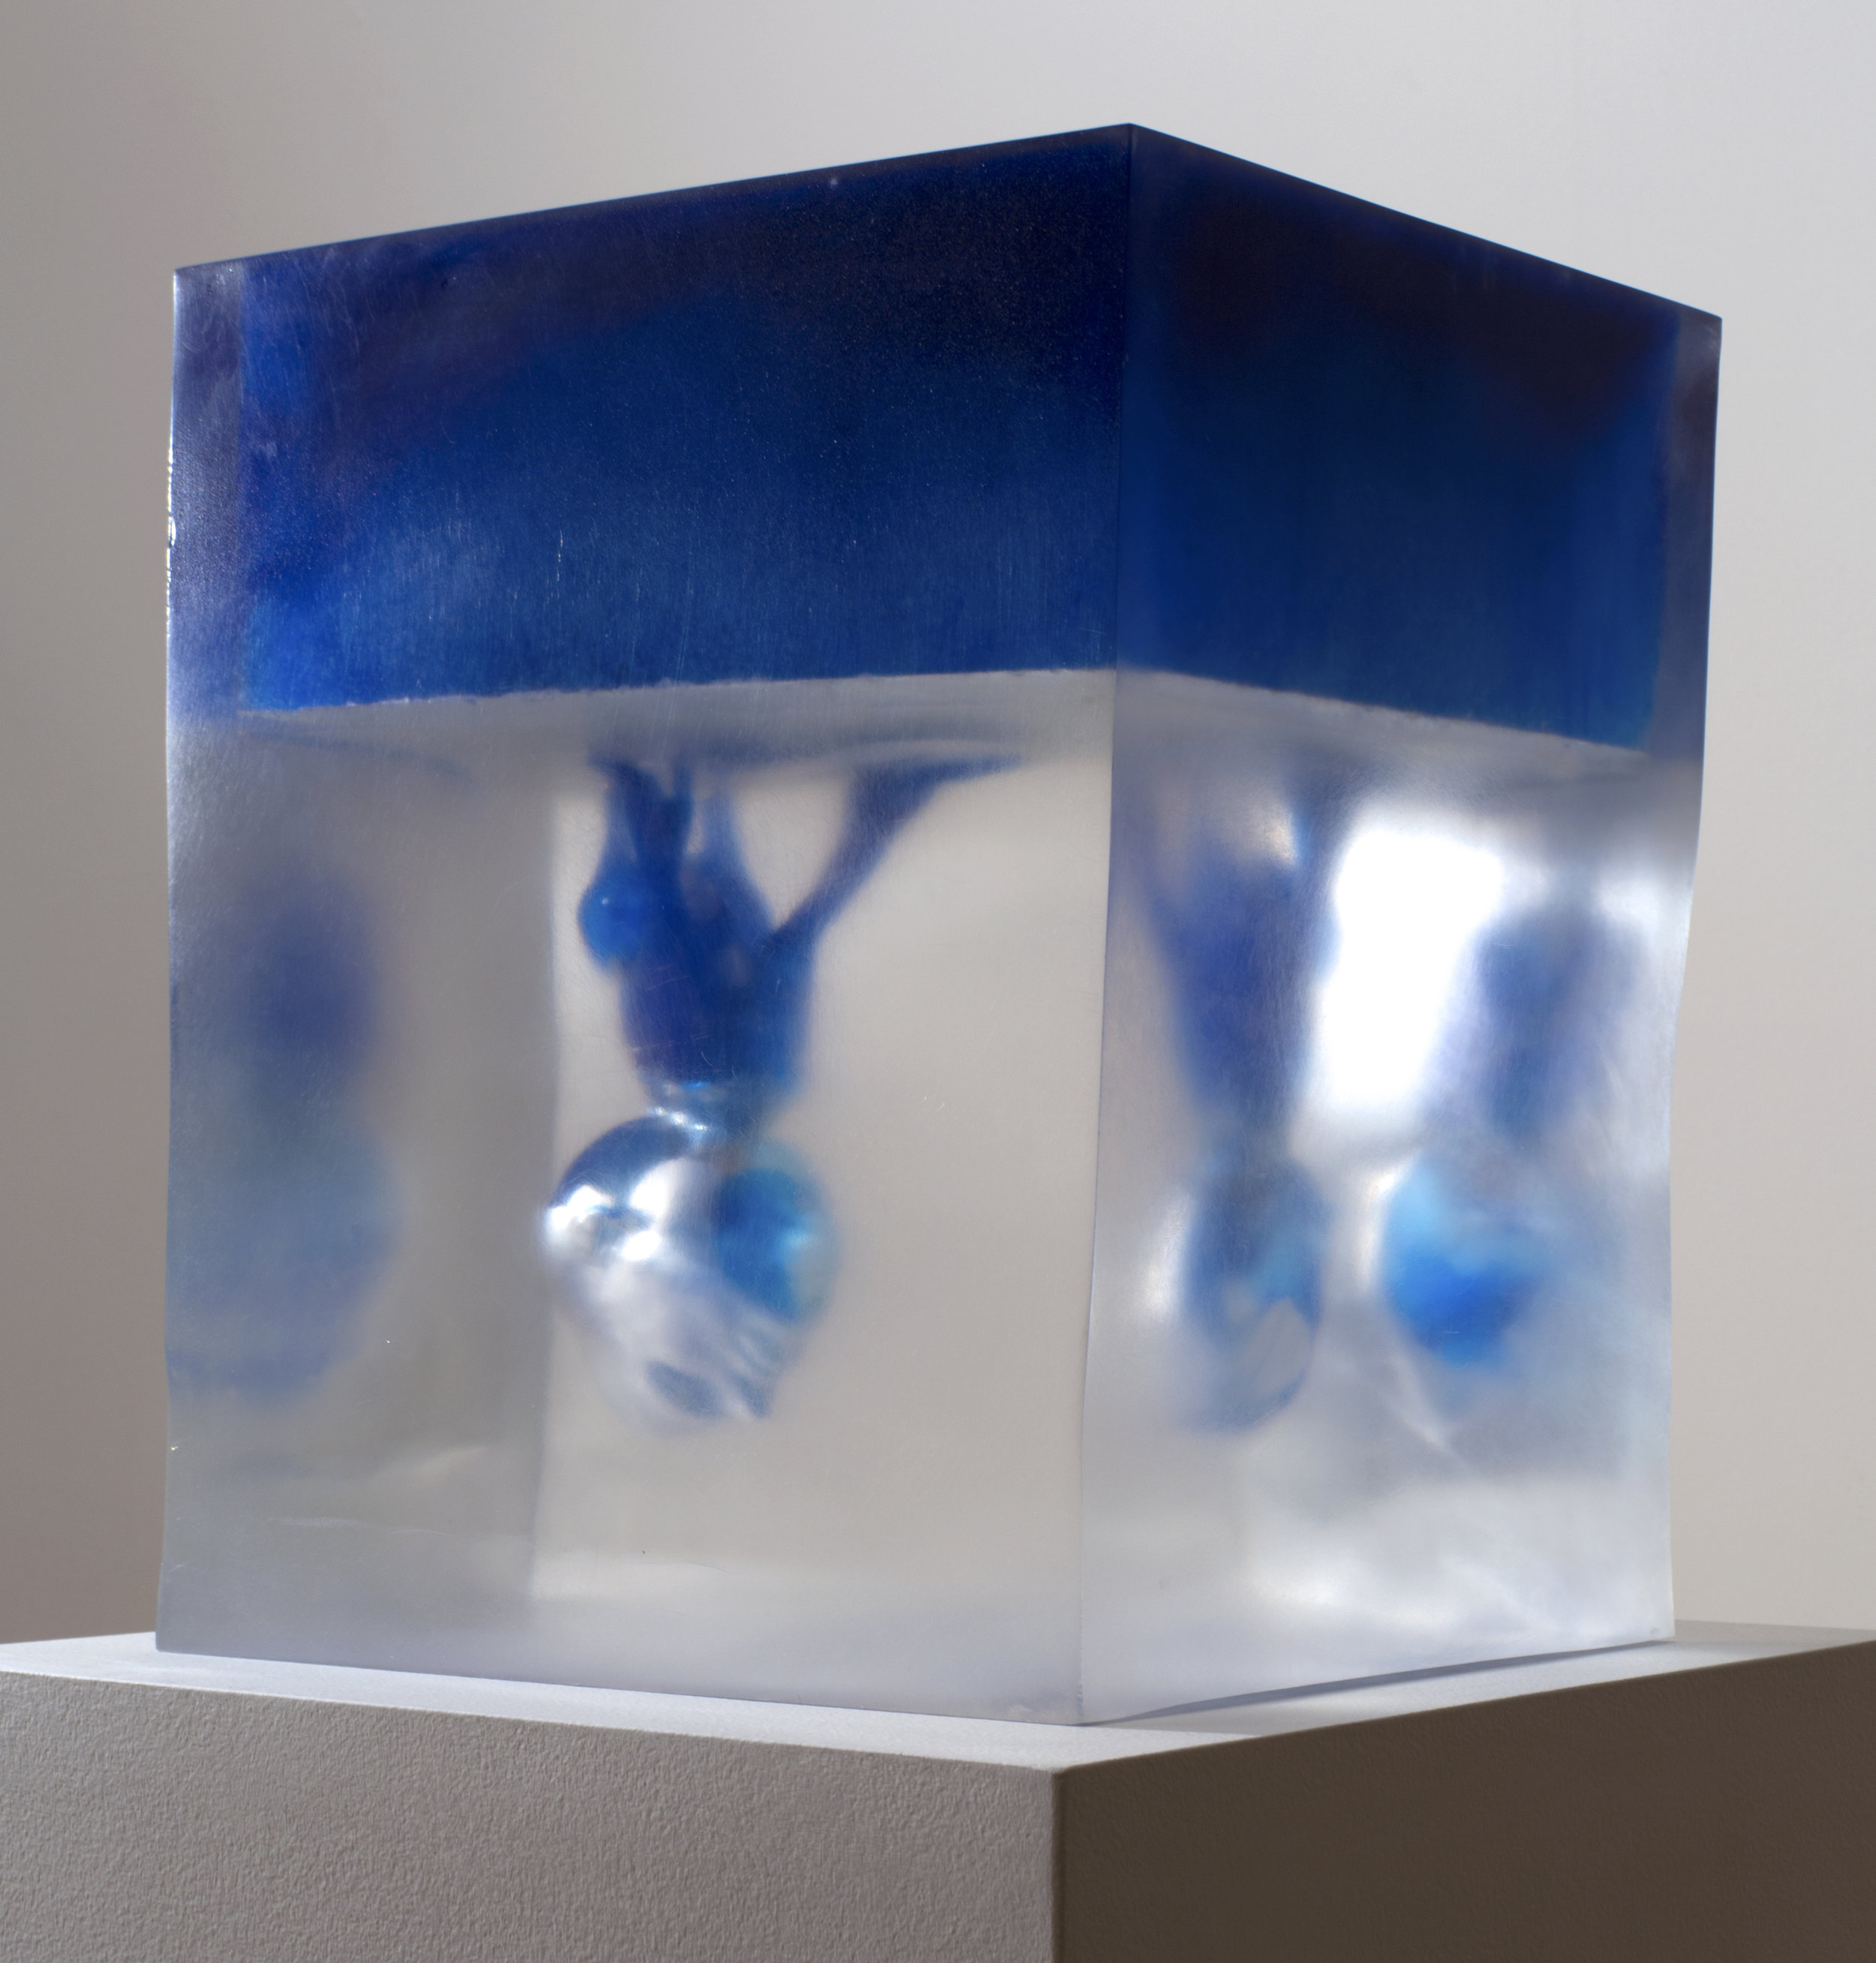 RonaPondick  Upside Down Blue , 2014-17 pigmented resin and acrylic 13 3/8 x 9 7/8 x 11 7/16 in